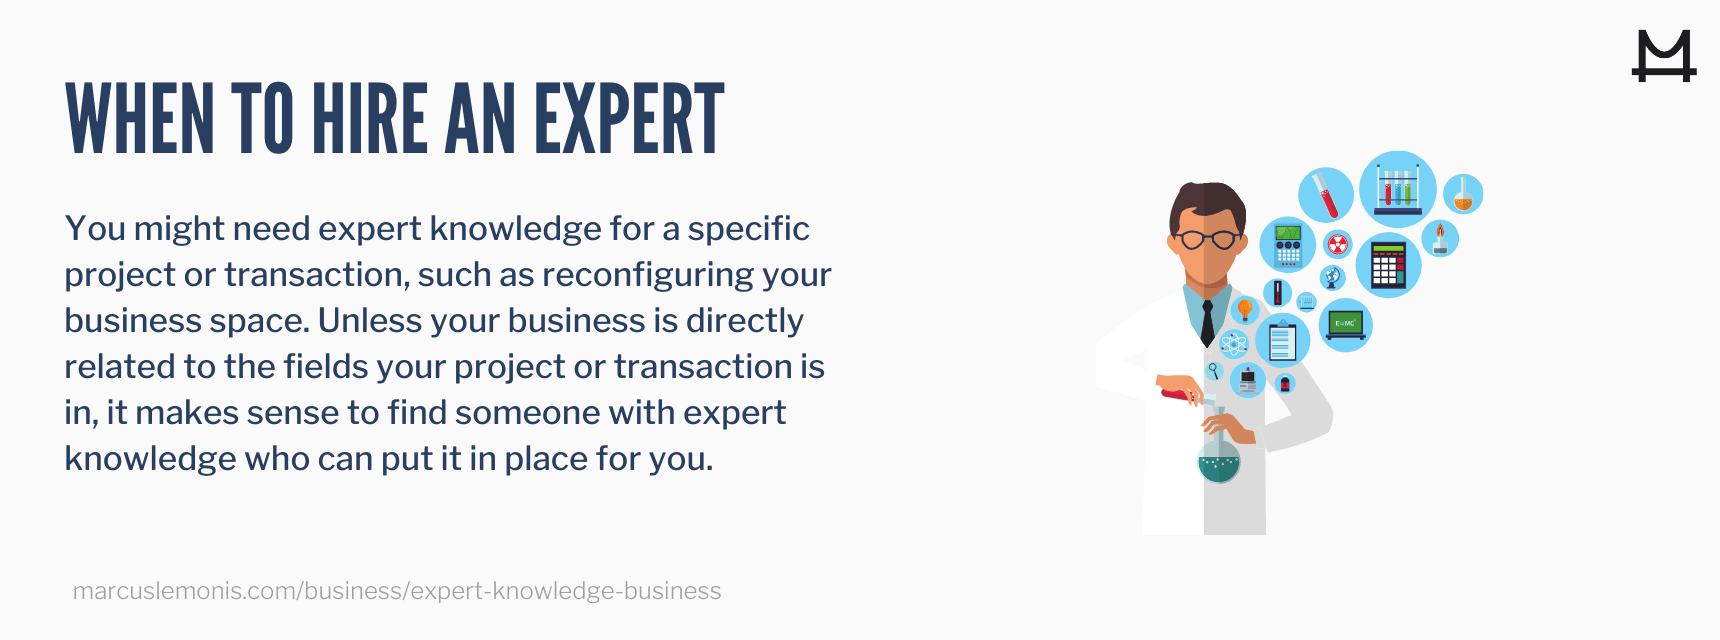 Lesson on how to determine when you should hire an expert